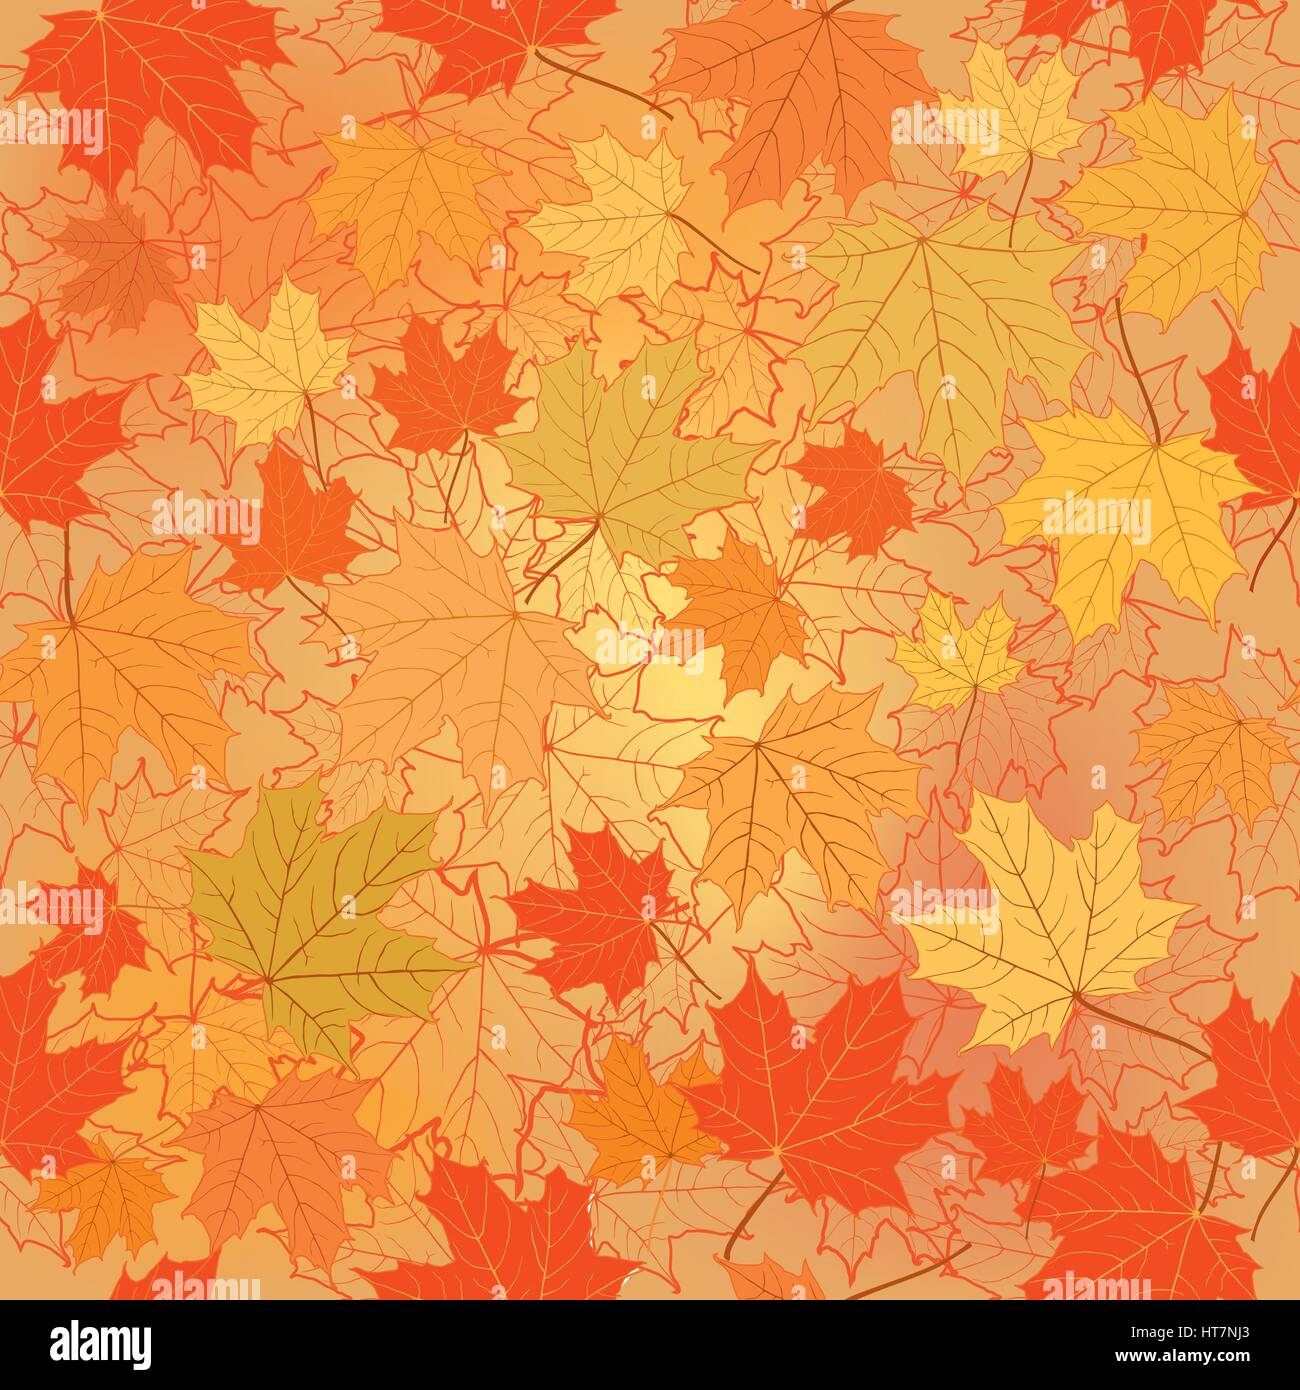 - Fall Leaf Nature Autumn Leaves Background Season Floral Pattern